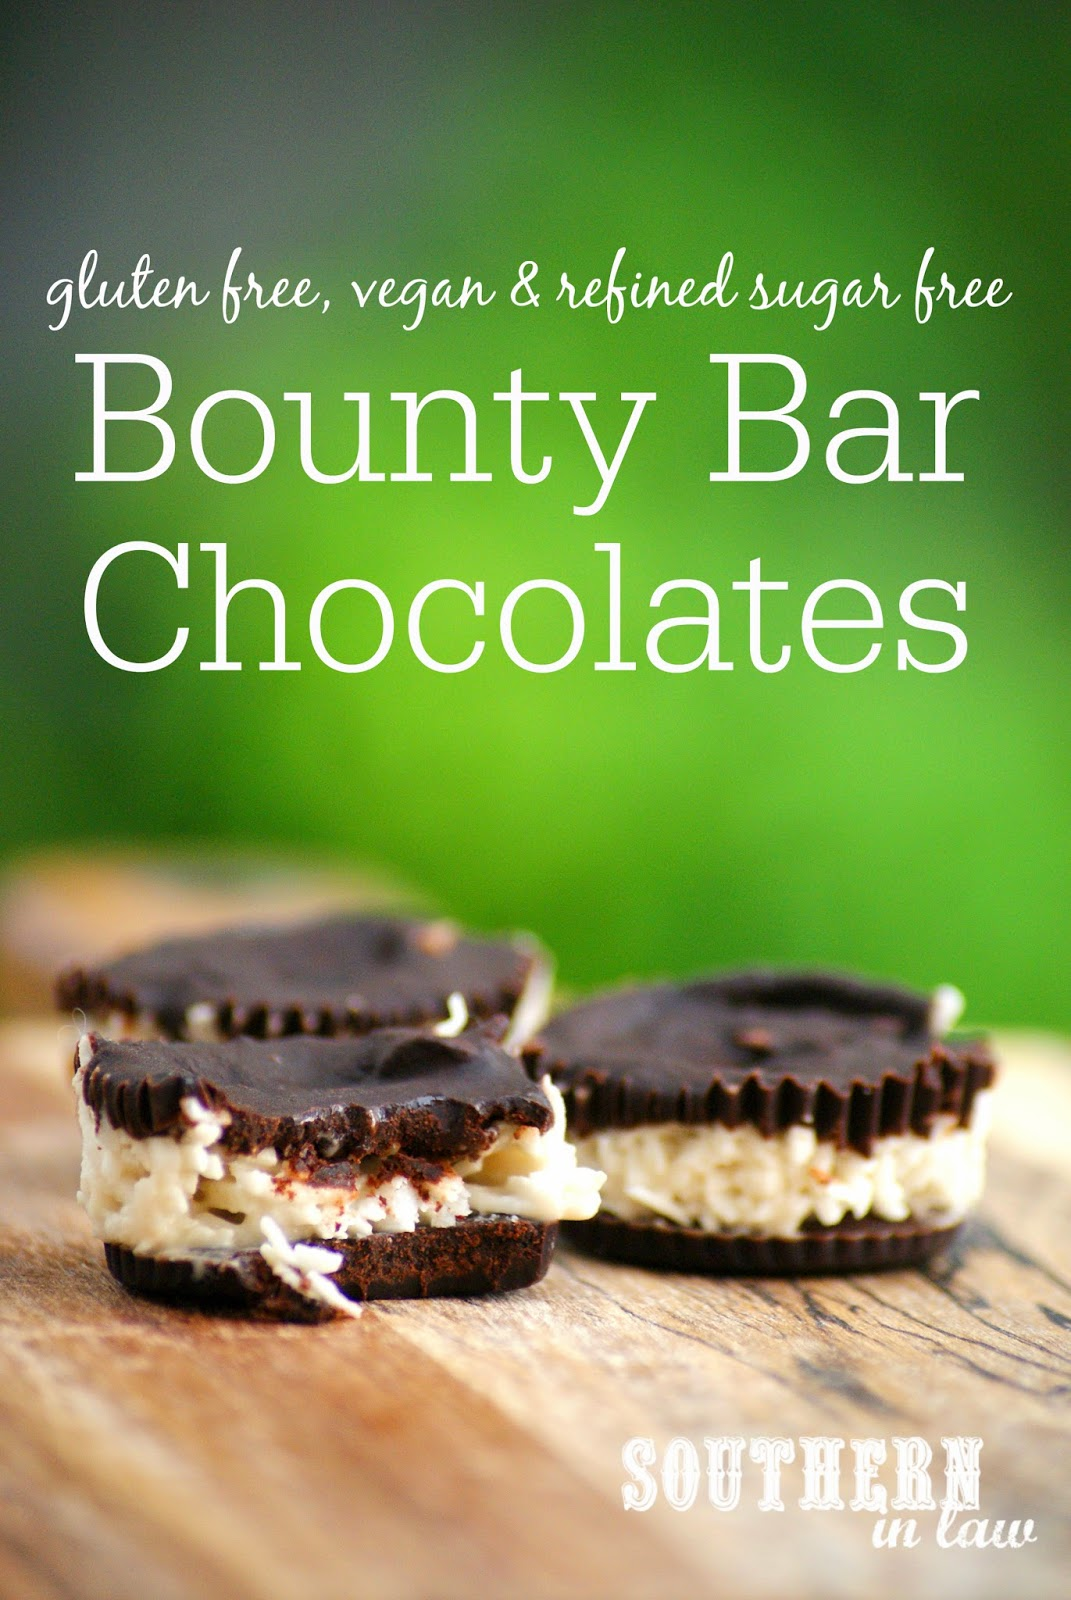 Homemade Vegan Bounty Bar Chocolate Cups Recipe - gluten free, refined sugar free, healthy, vegan, egg free, dairy free